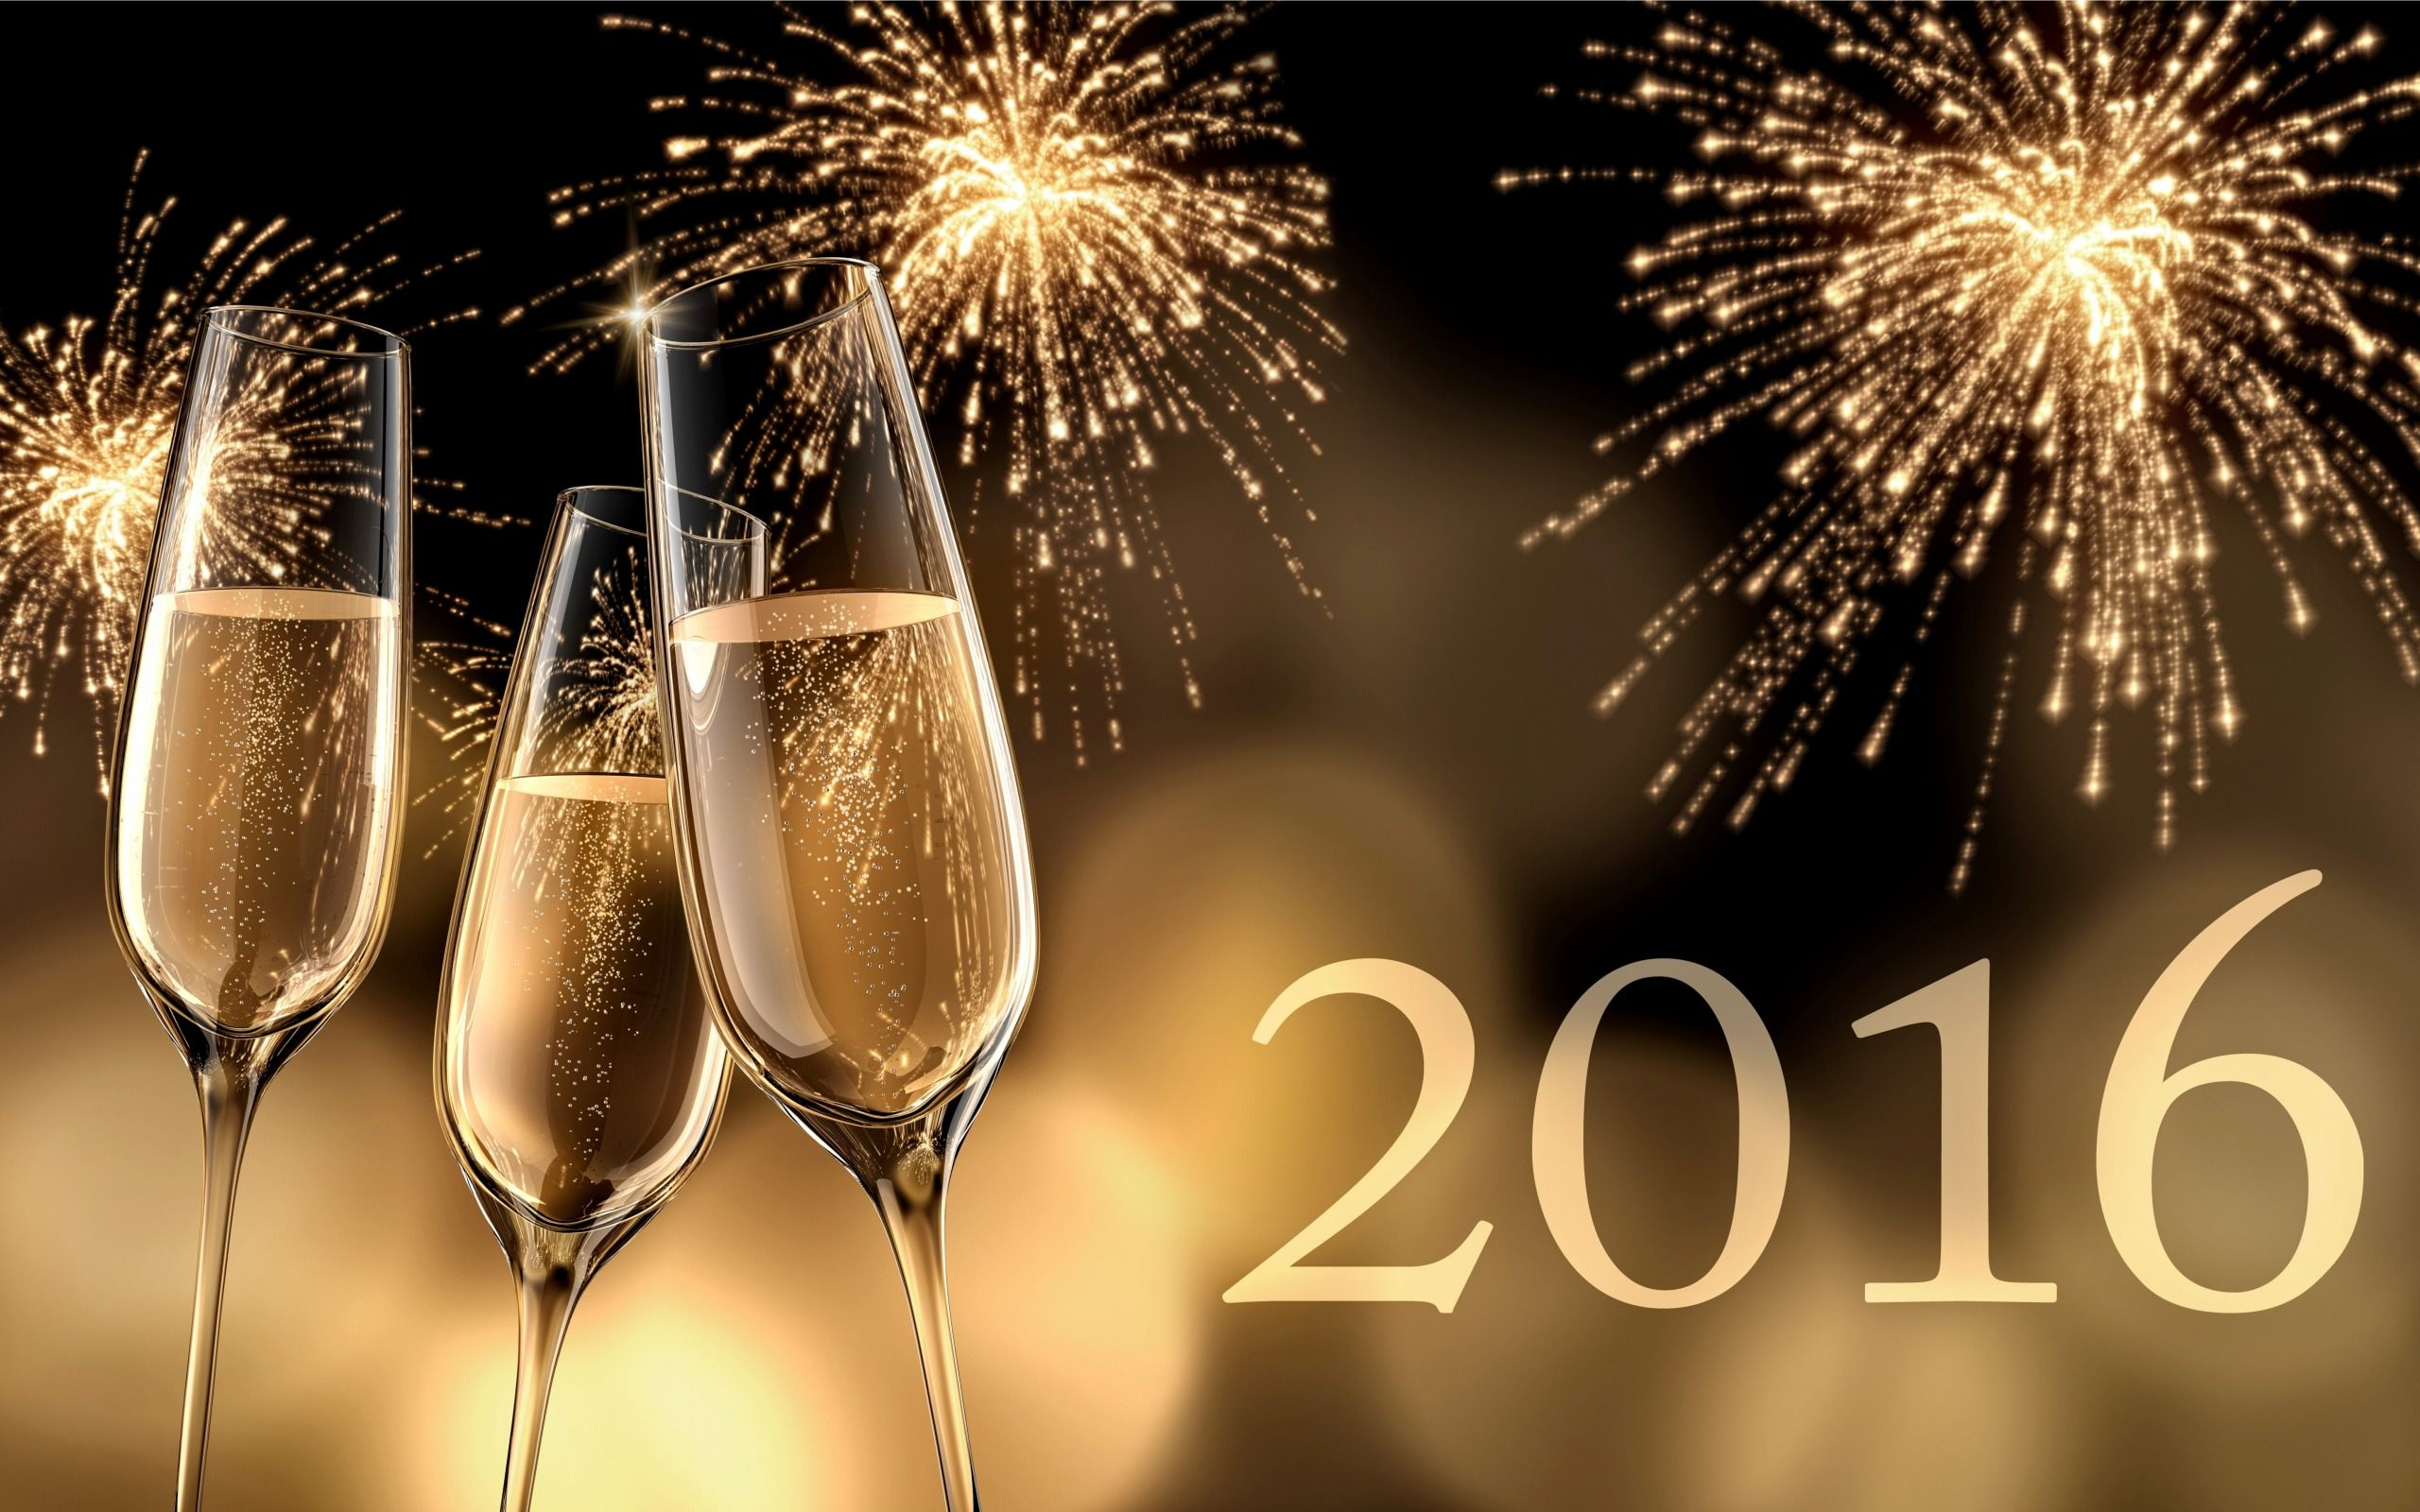 Happy new year wallpapers 2016 images and graphics for New design wallpaper 2016